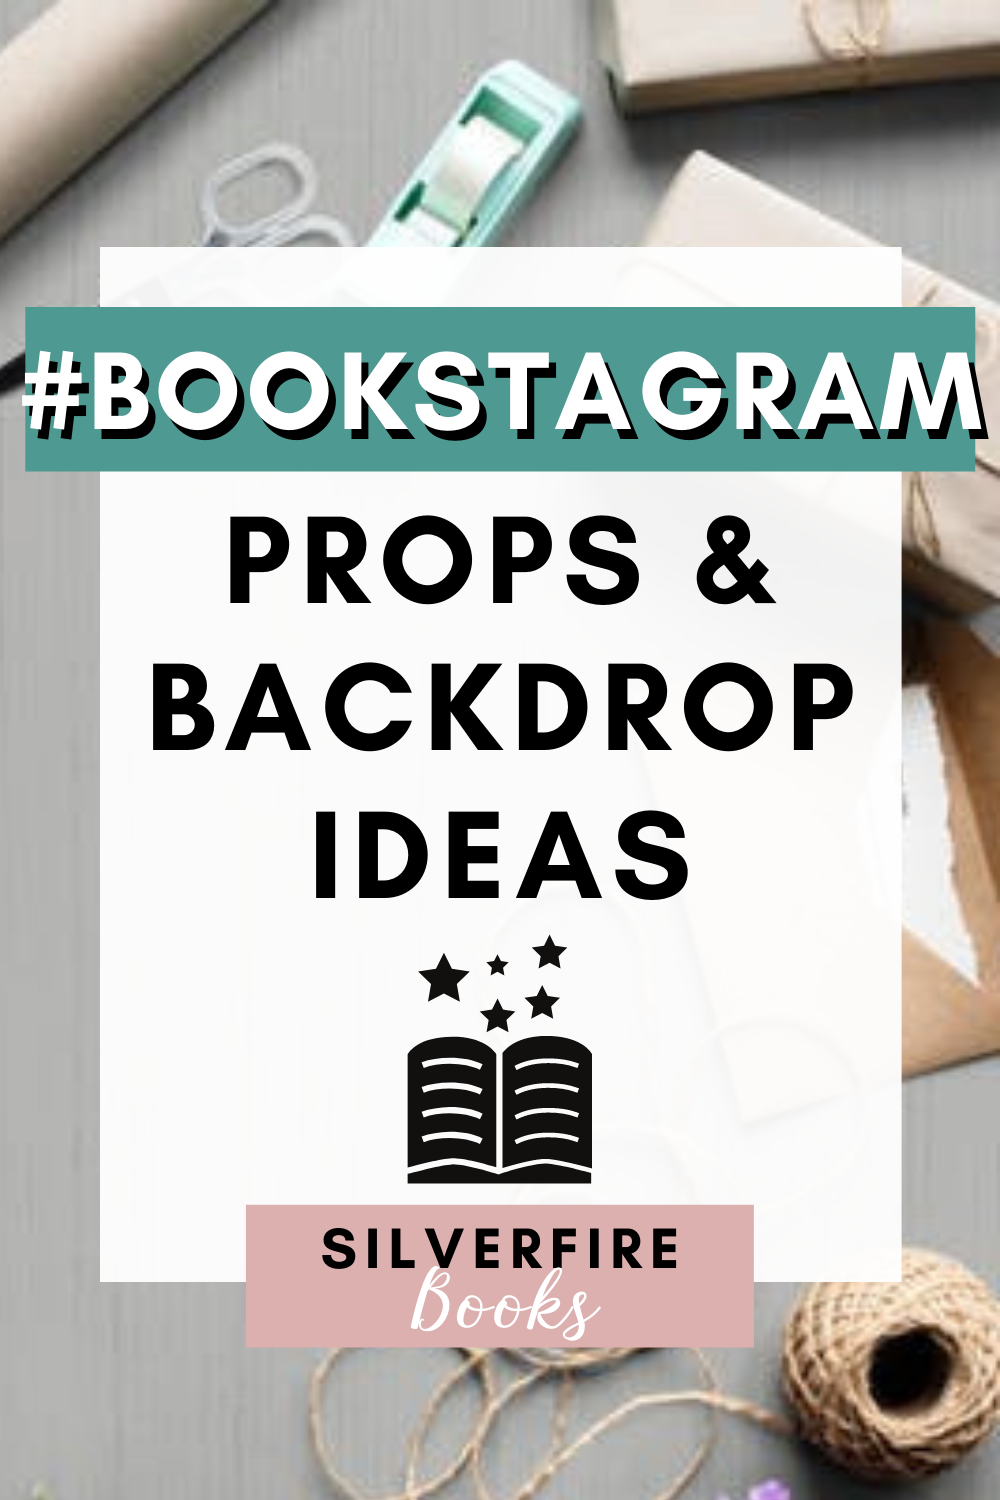 Bookstagram props and background ideas for book photos